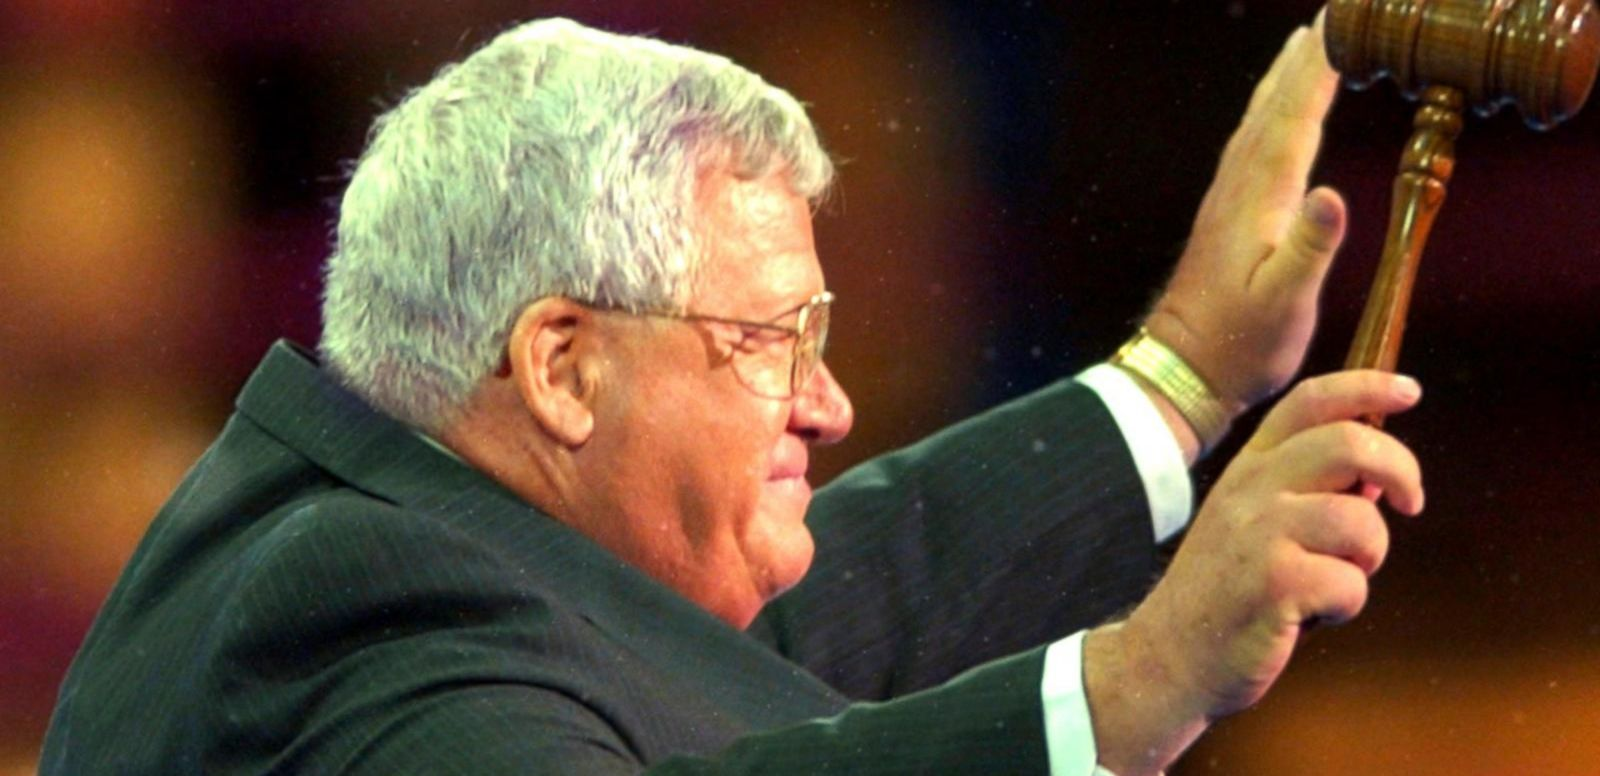 VIDEO: Dennis Hastert Faces Sexual Abuse Allegations